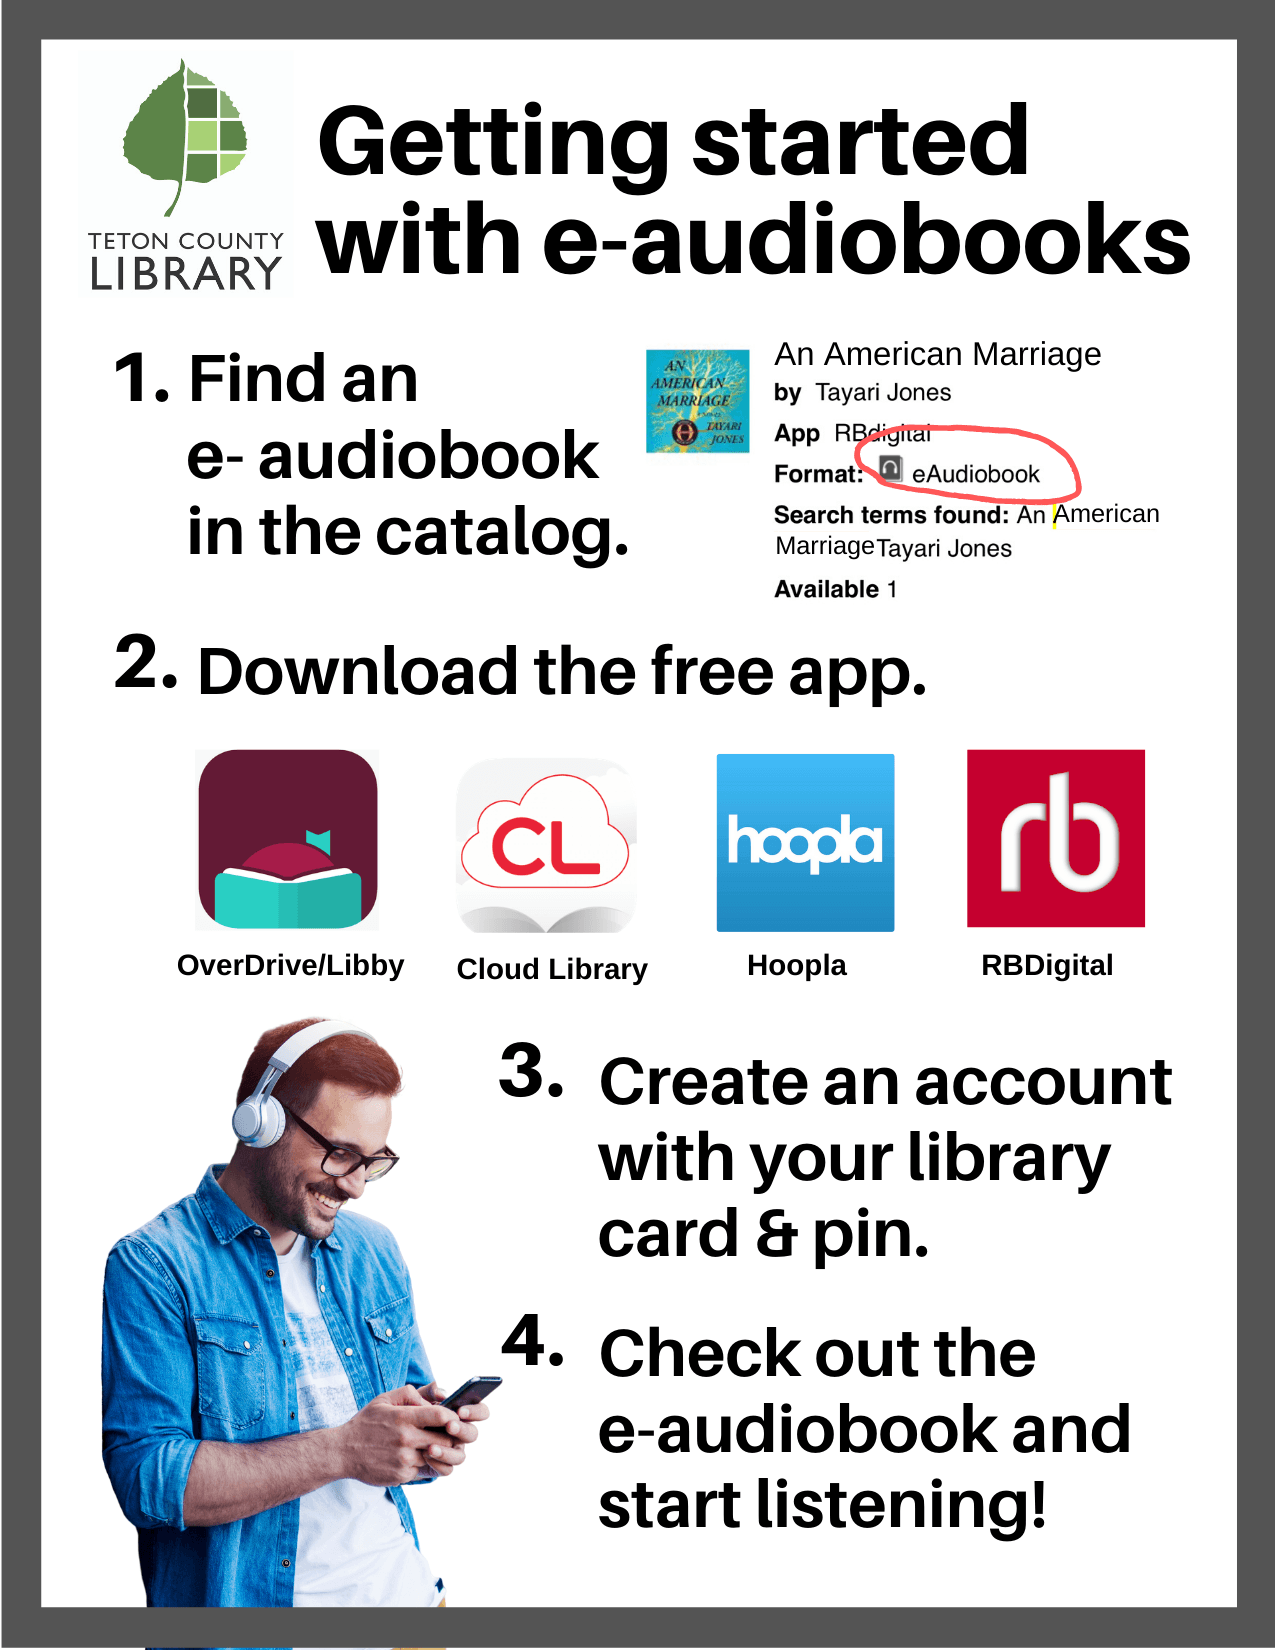 image with e-audiobooks instructions